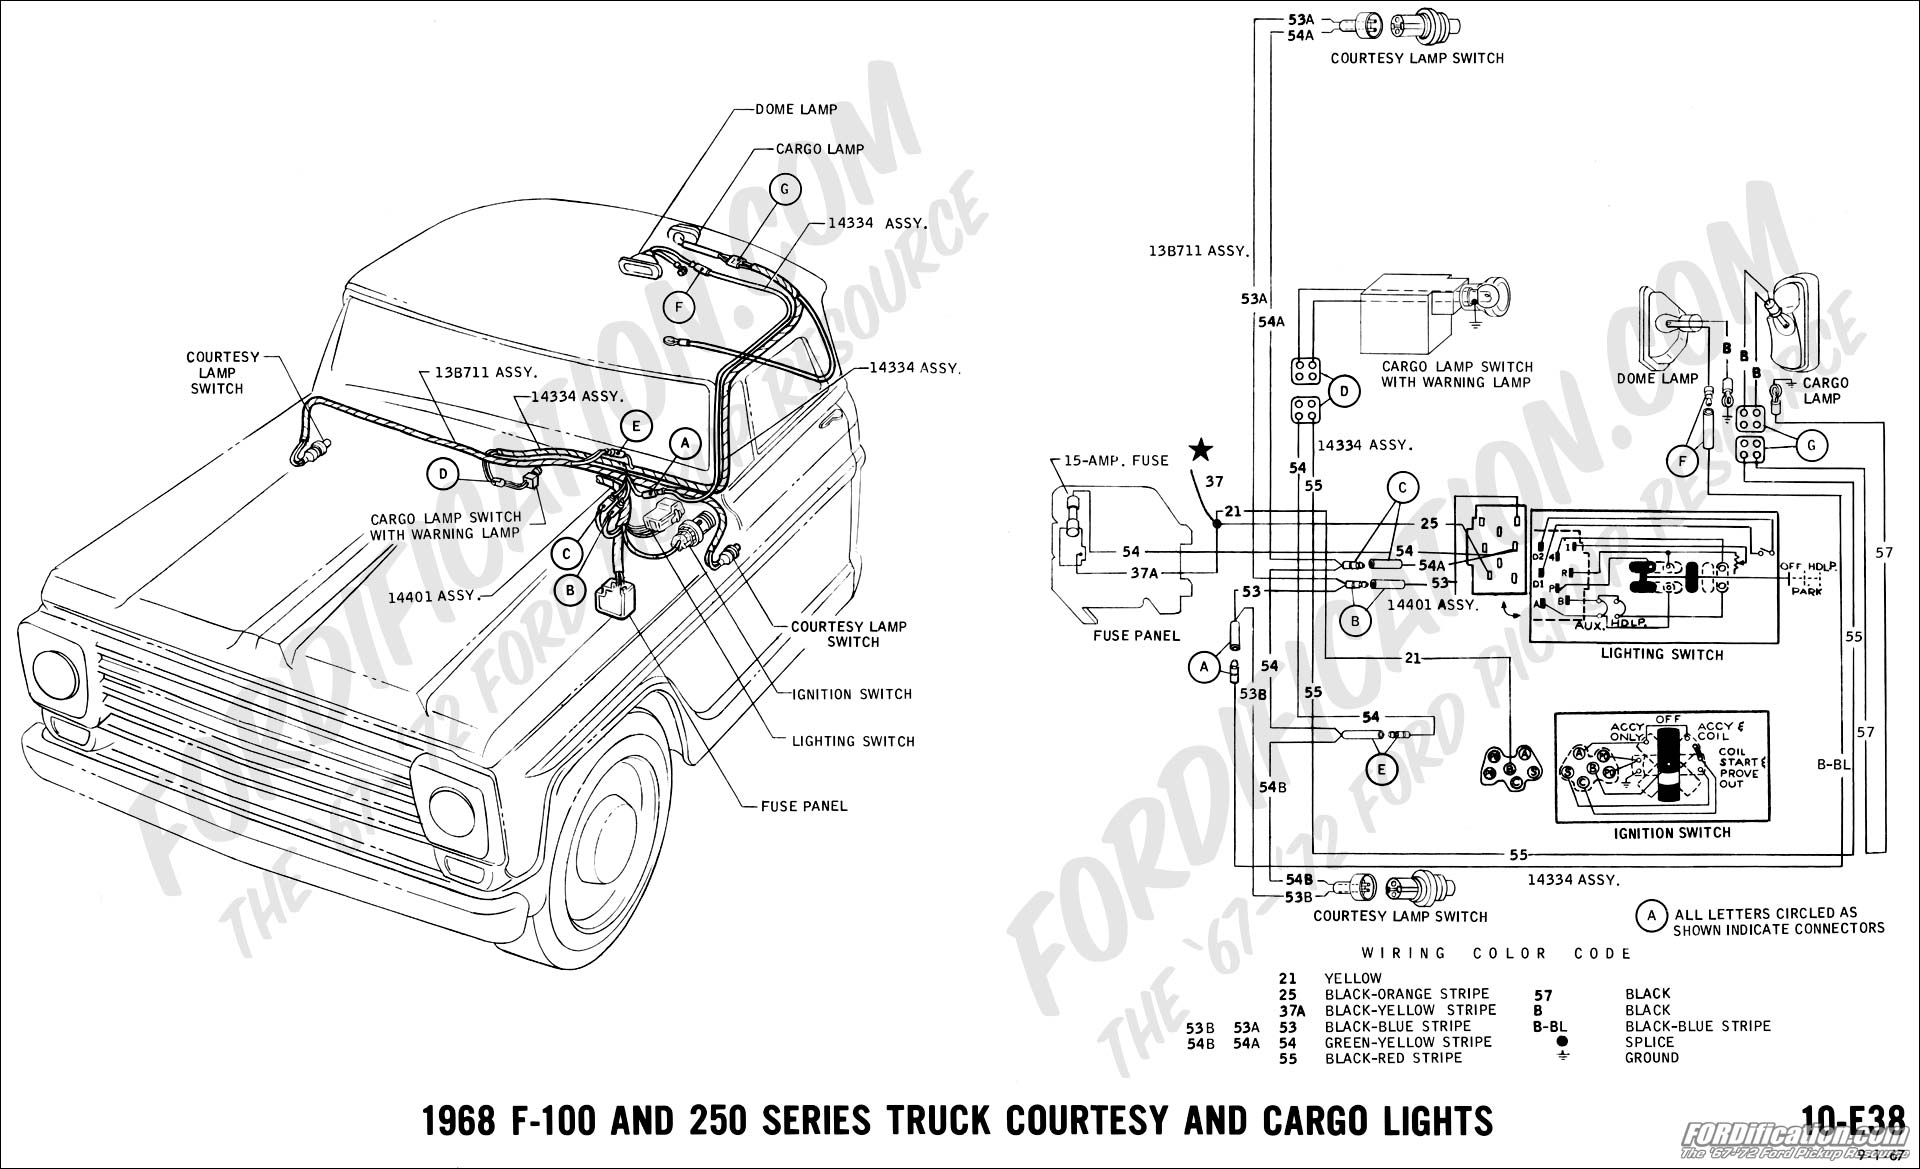 1959 ford f100 ignition wiring diagram ford truck technical drawings and schematics section h 1968 f100 ignition wiring diagram #4